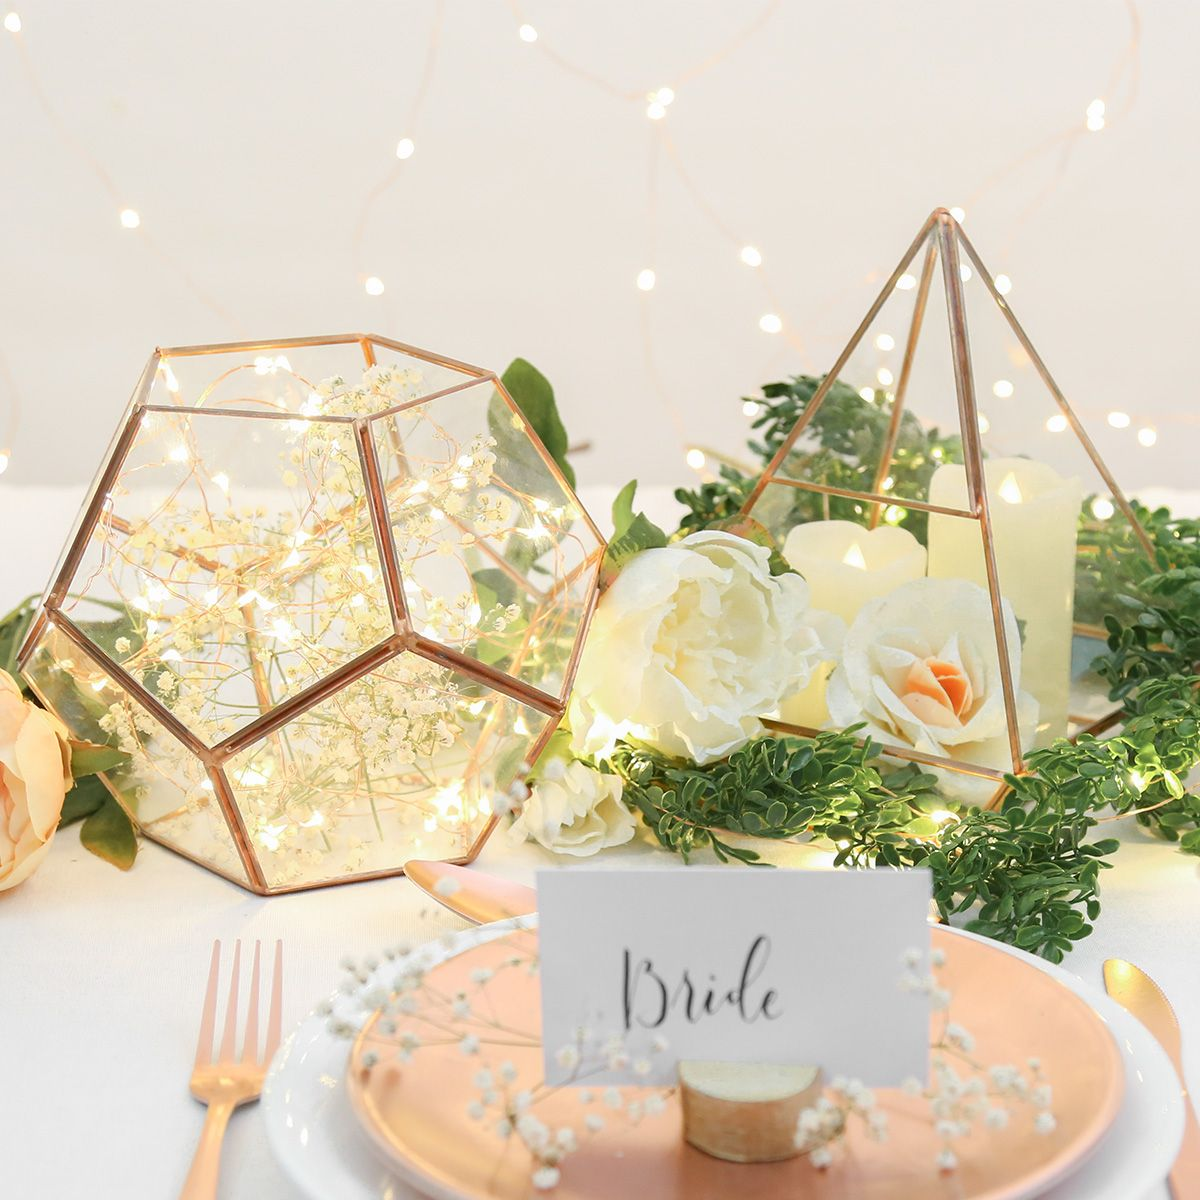 Looking For The Perfect Wedding Table Decor Try These Copper And Gold Terrariums Great To Use Brides Table Decorations Terrarium Wedding Wedding Centerpieces